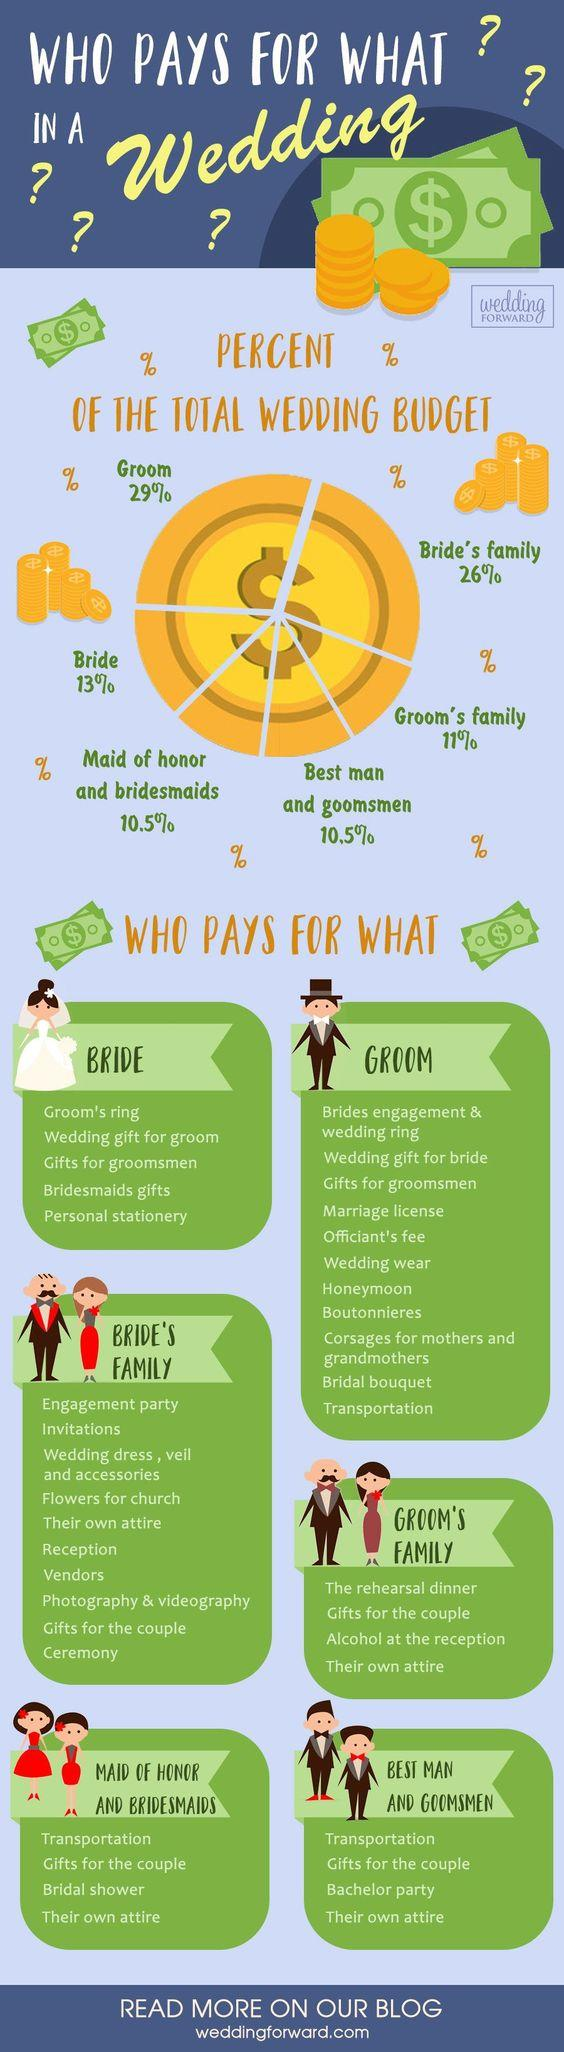 wedding planning infographics who pays for what main rules